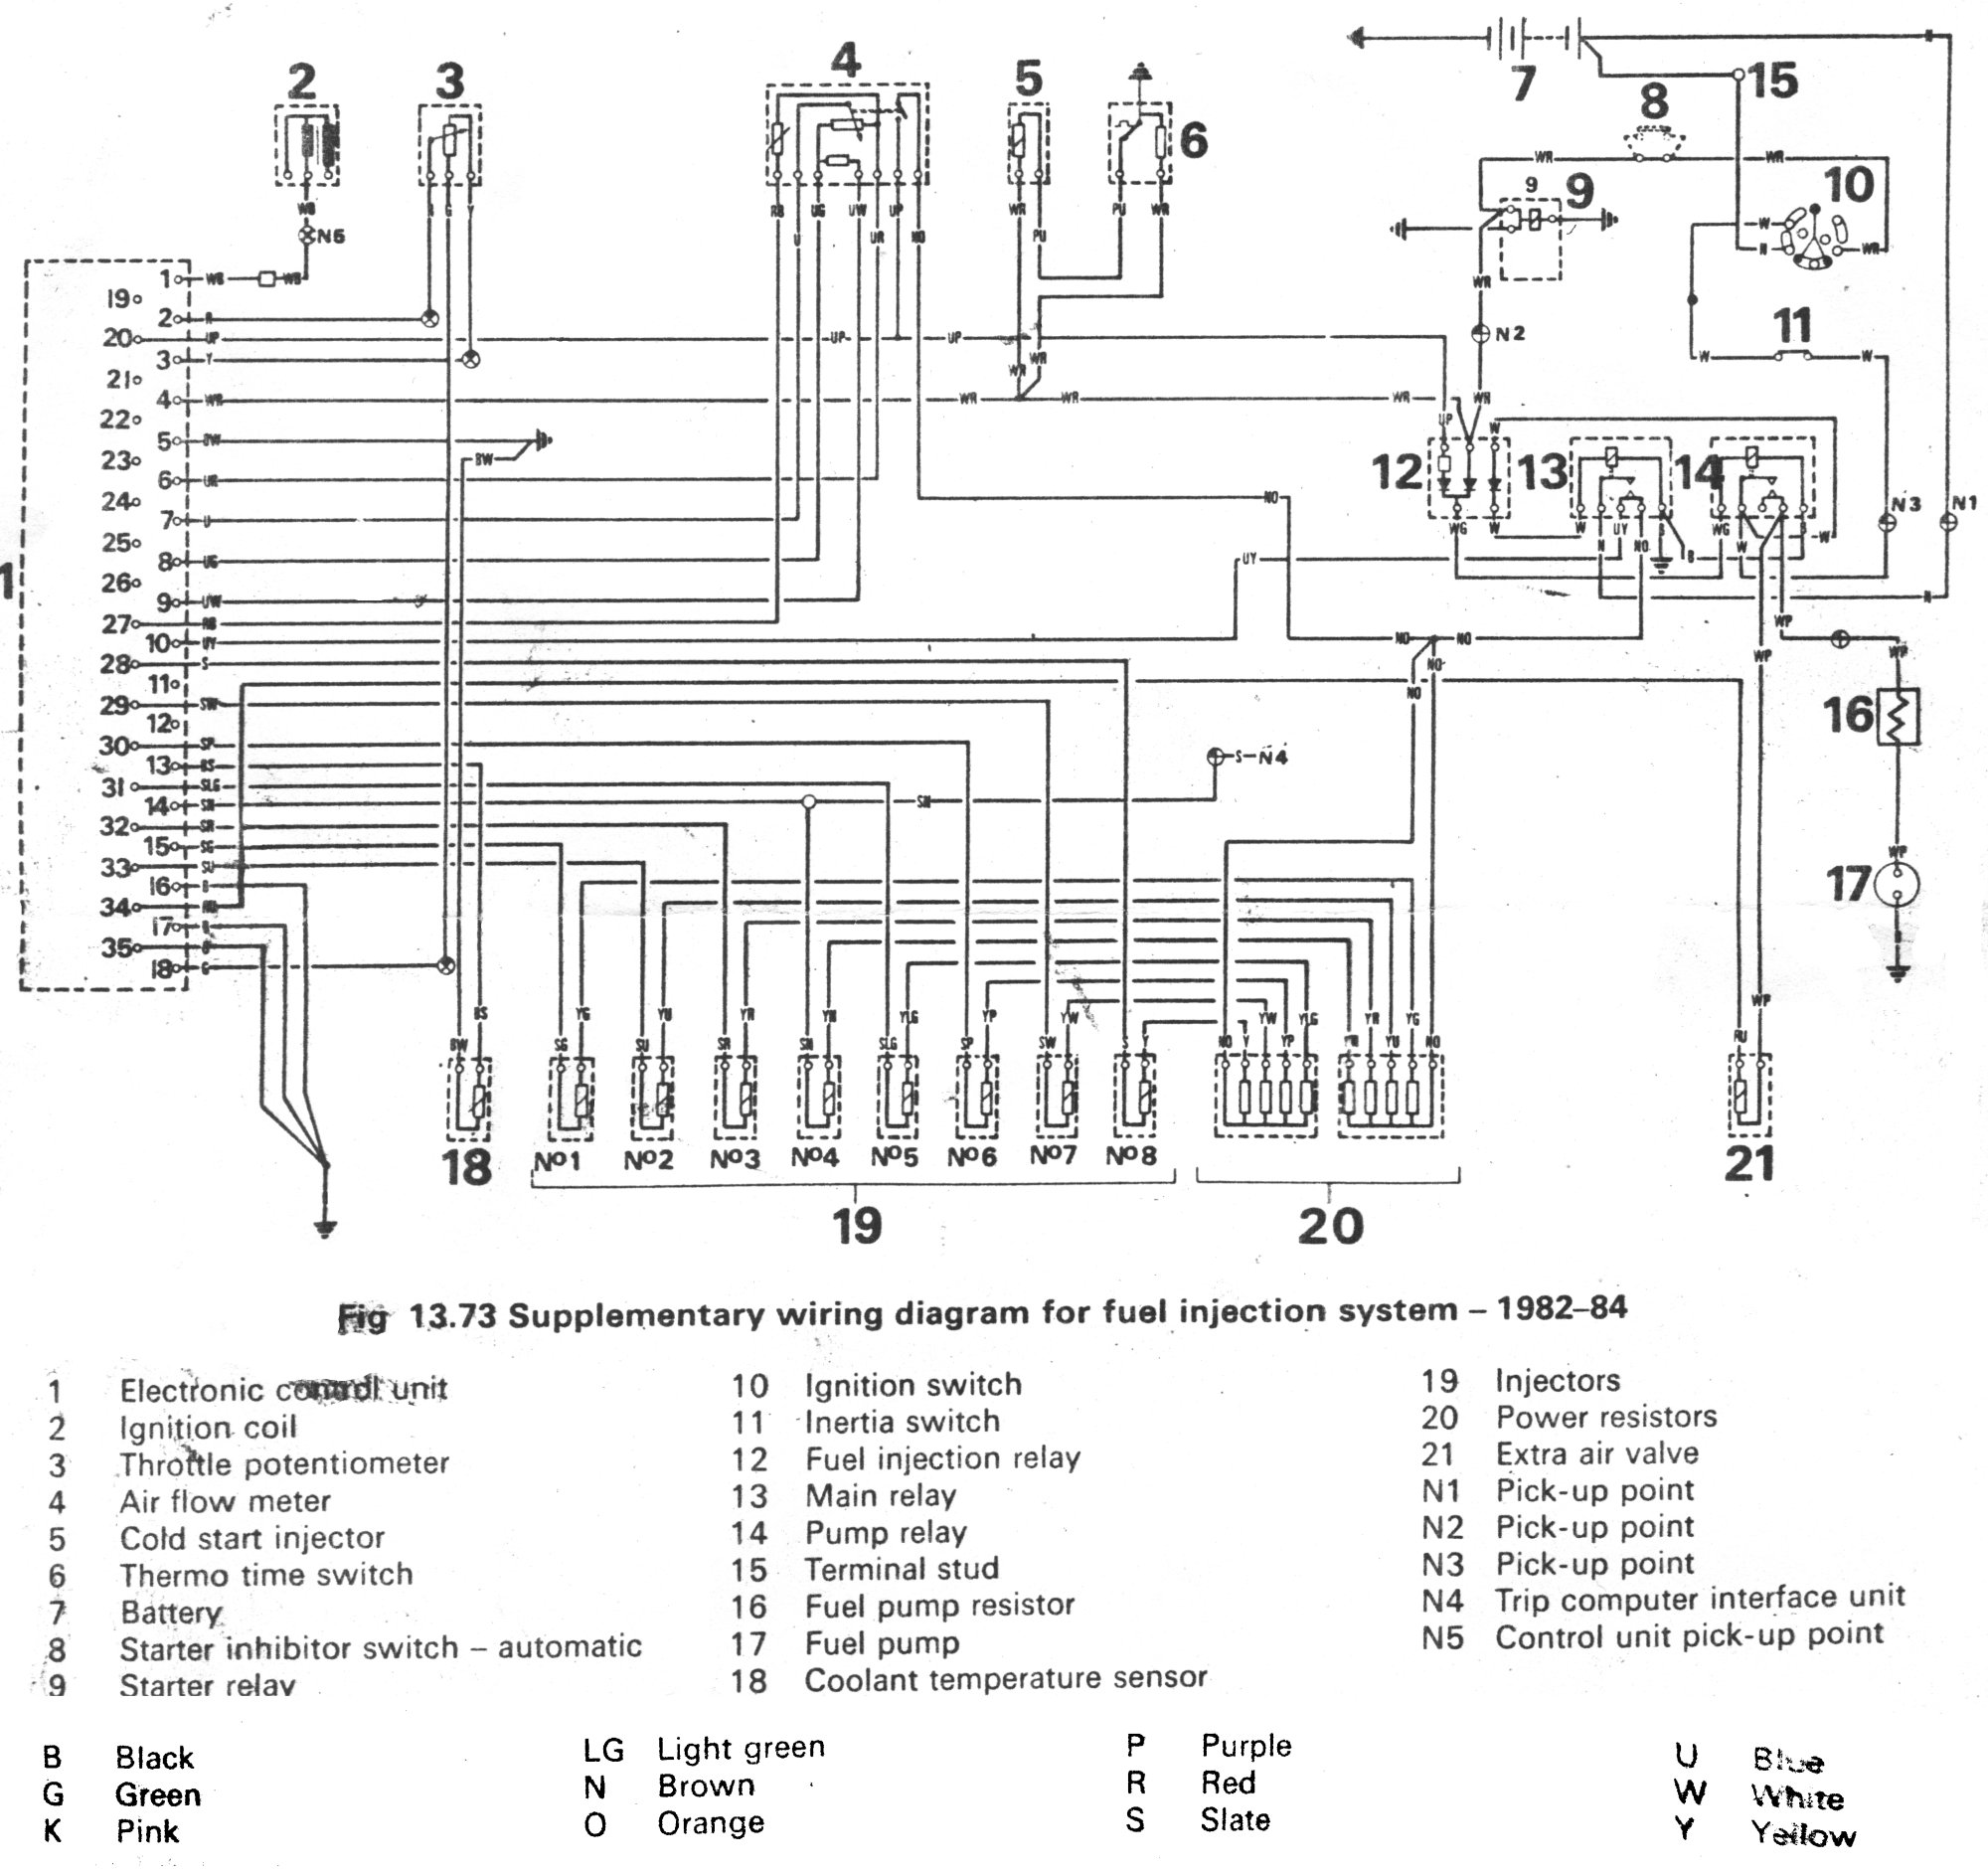 hight resolution of fuses diagram 96 land rover data diagram schematic1997 land rover discovery fuse diagram wiring diagram used